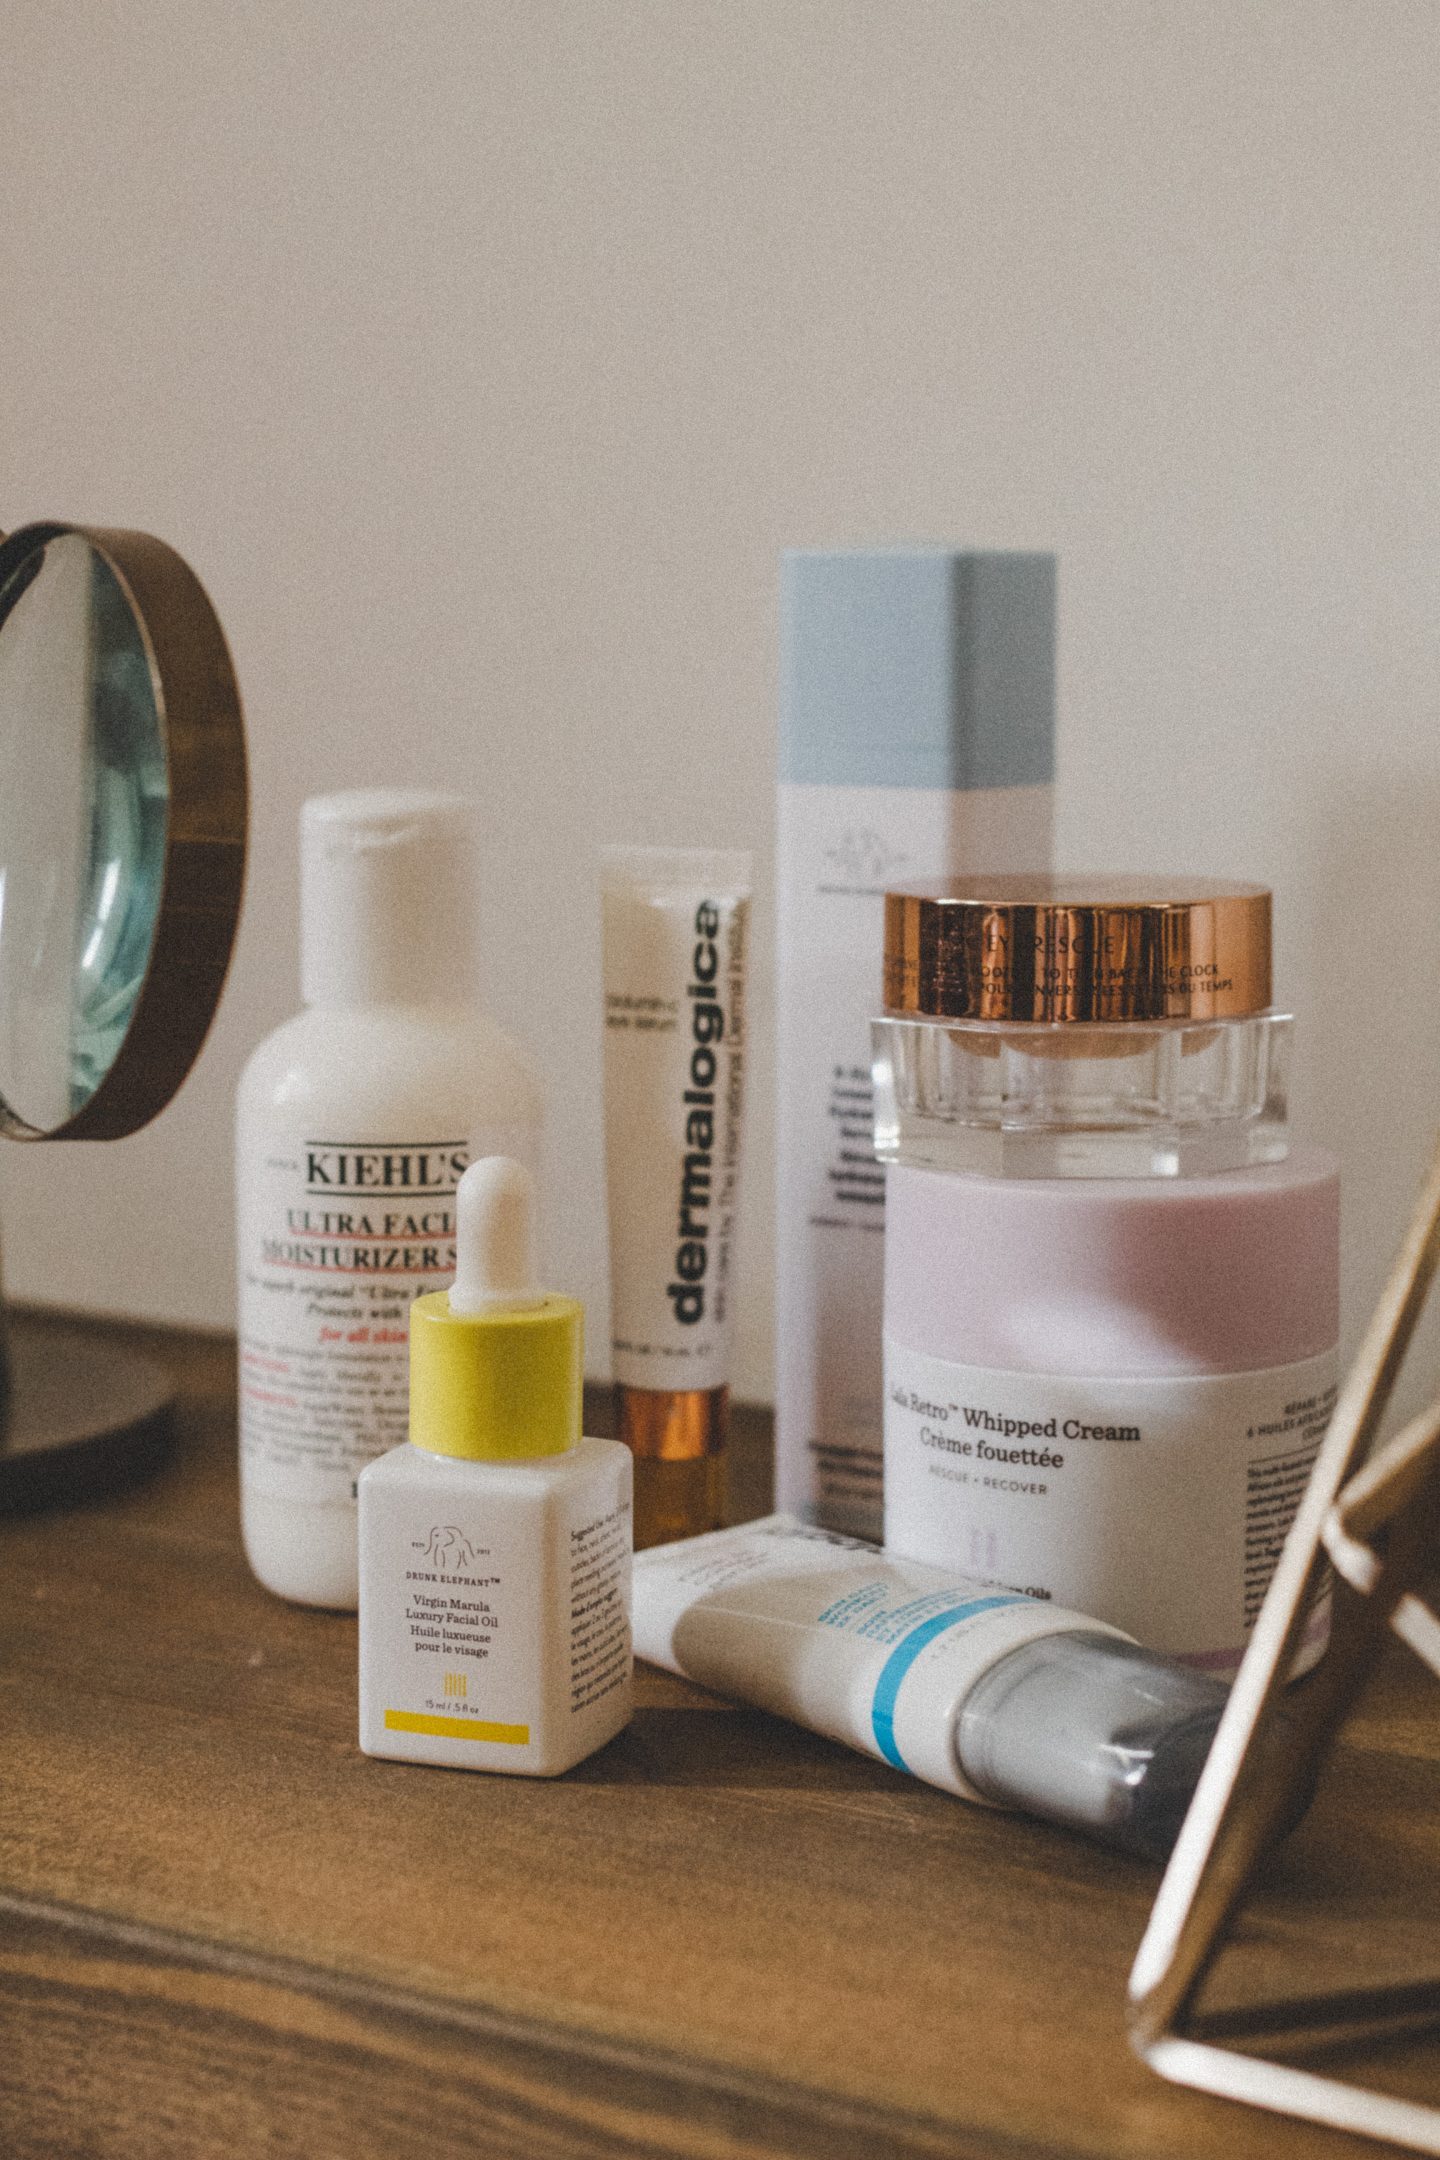 My Current Skincare Routine for Dry/Sensitive Skin